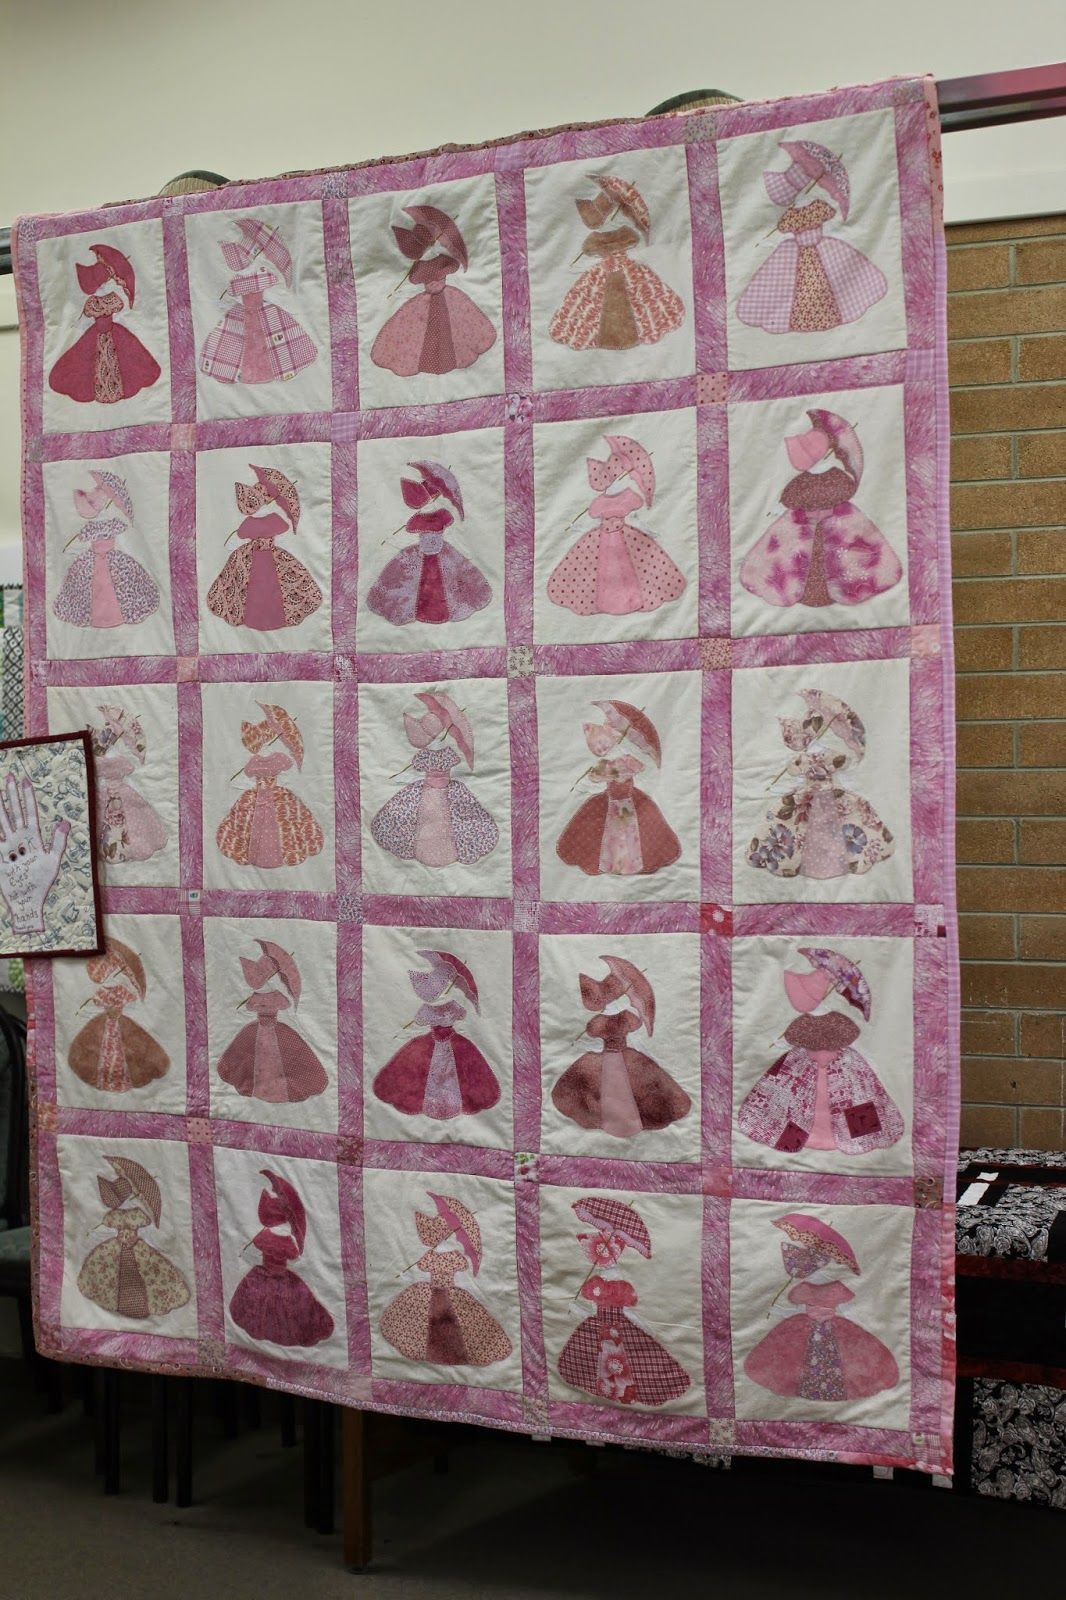 Silly Goose Quilts | Projects to Try | Pinterest | Sunbonnet sue ... : silly goose quilt pattern - Adamdwight.com